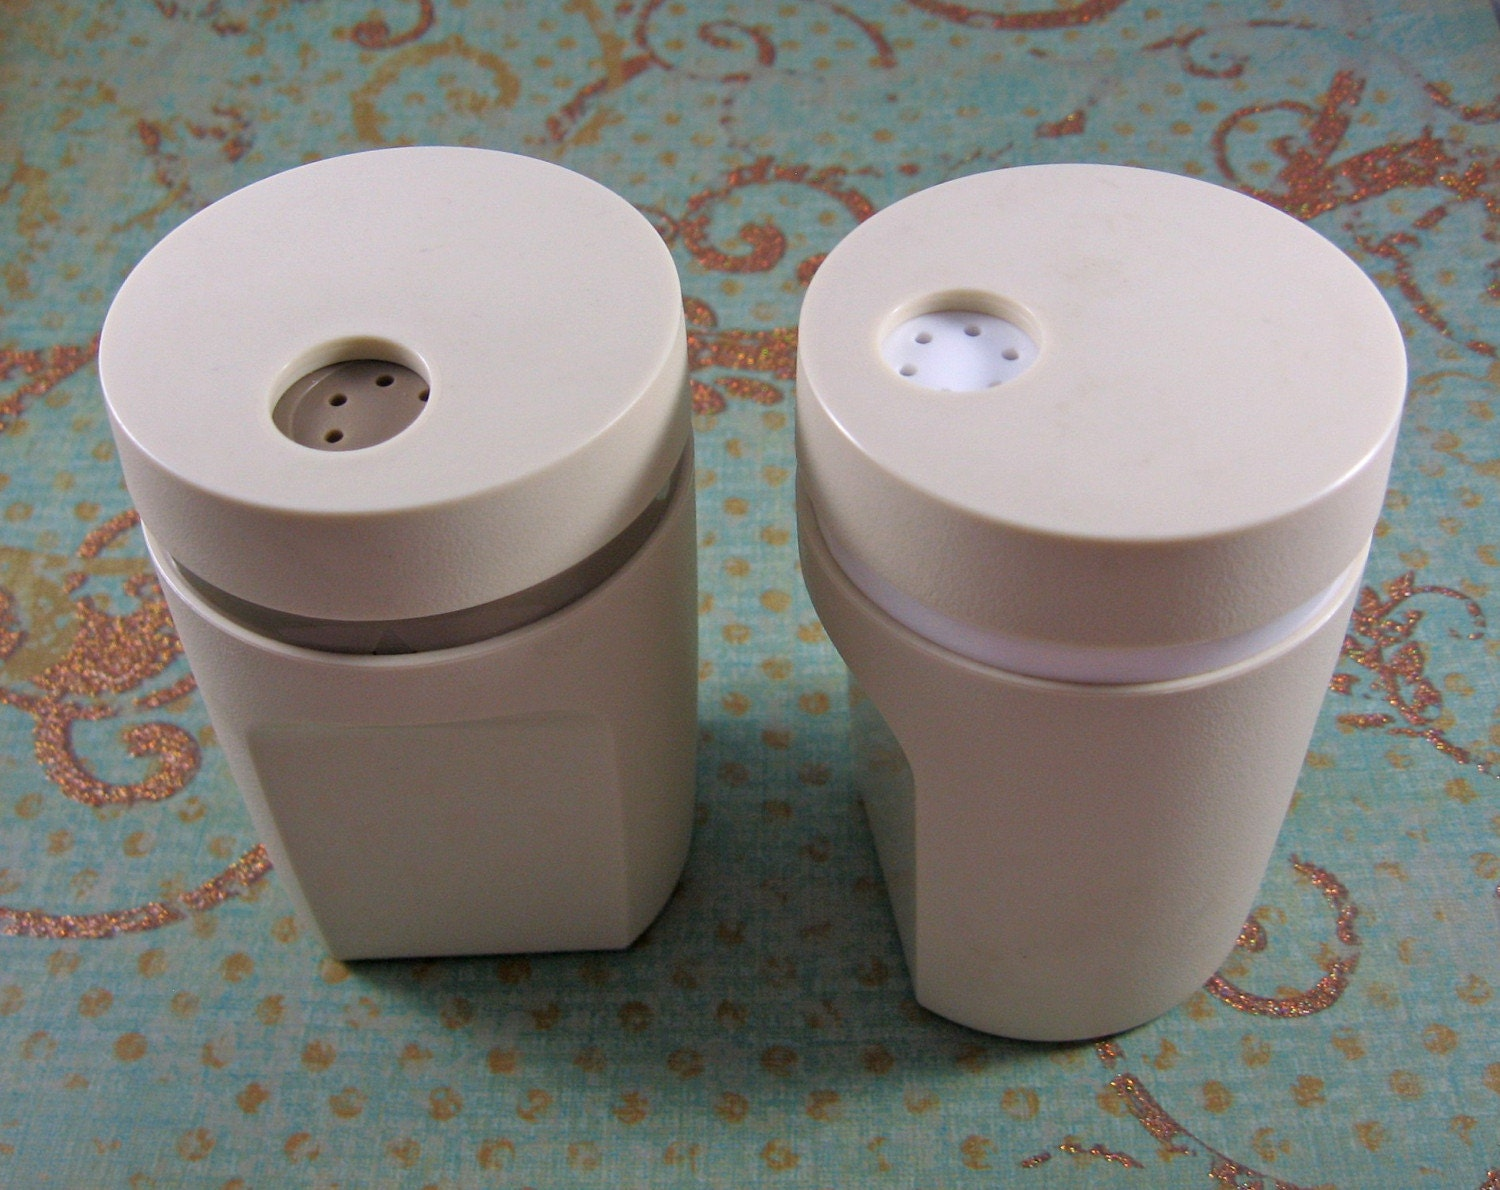 Vintage tupperware salt and pepper shakers by lulusfiveanddime for Vintage tupperware salt and pepper shakers